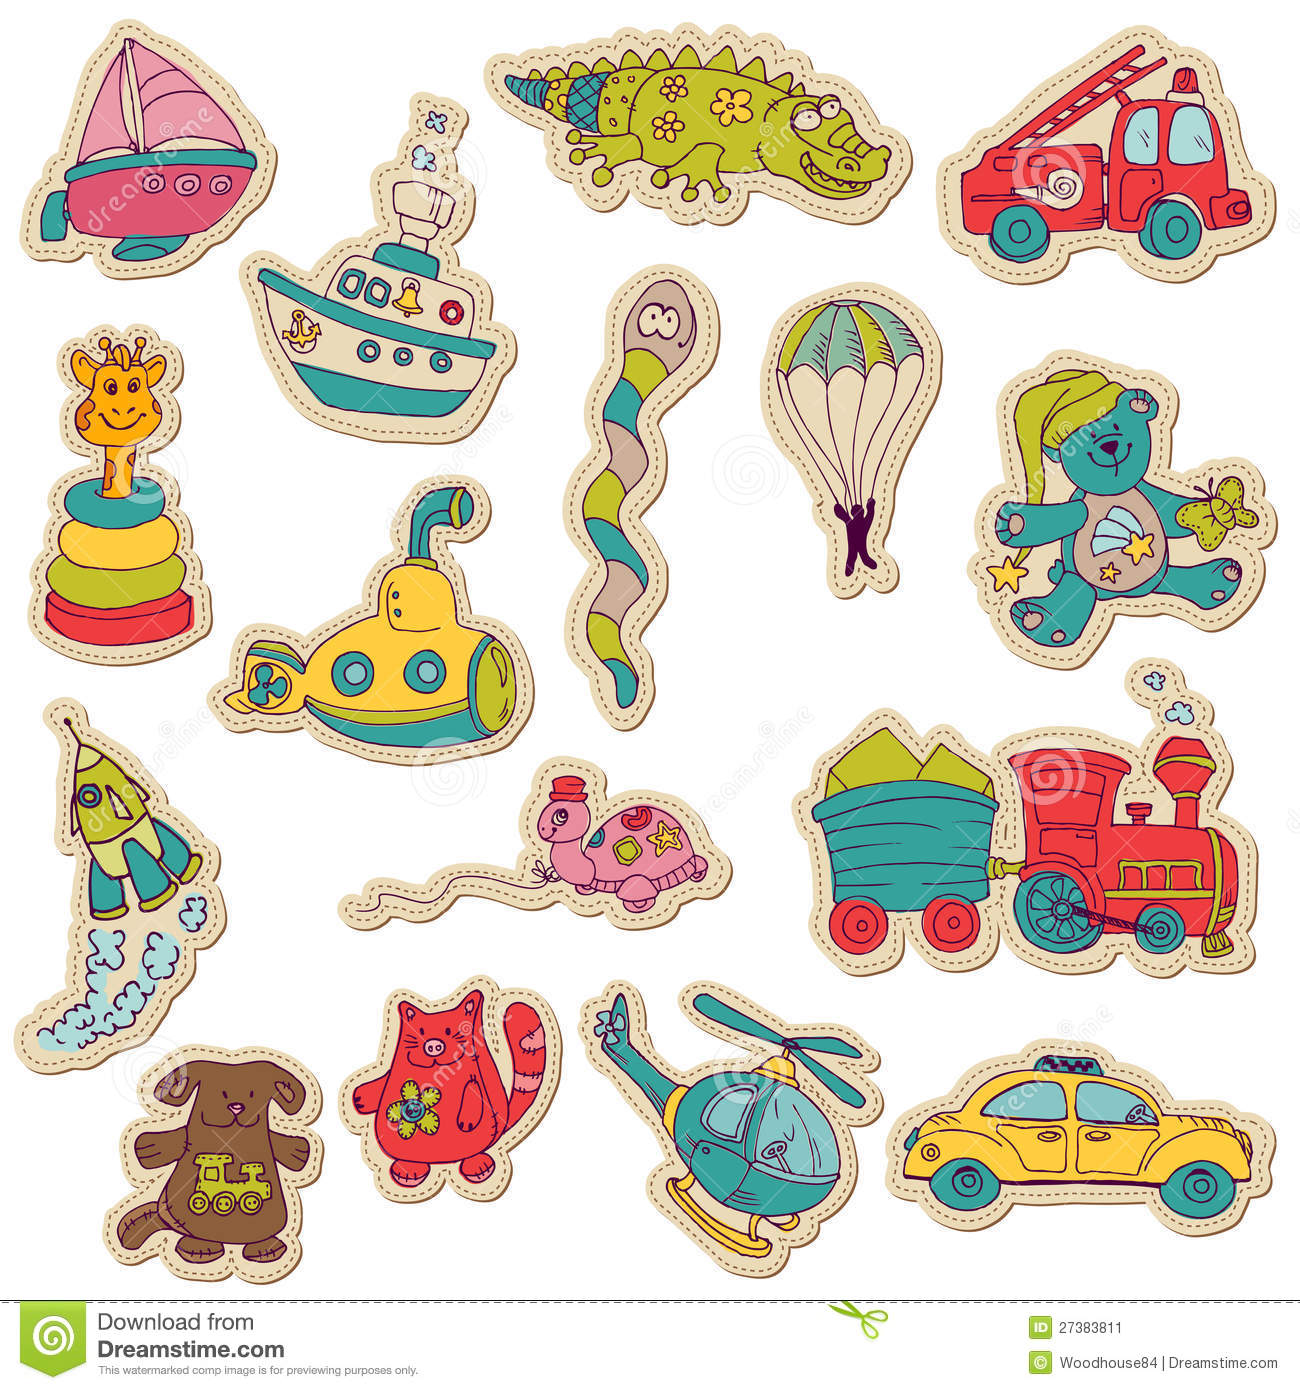 Baby toys stickers for design and scrapbook stock image image 27383811 - Stickers style industriel ...